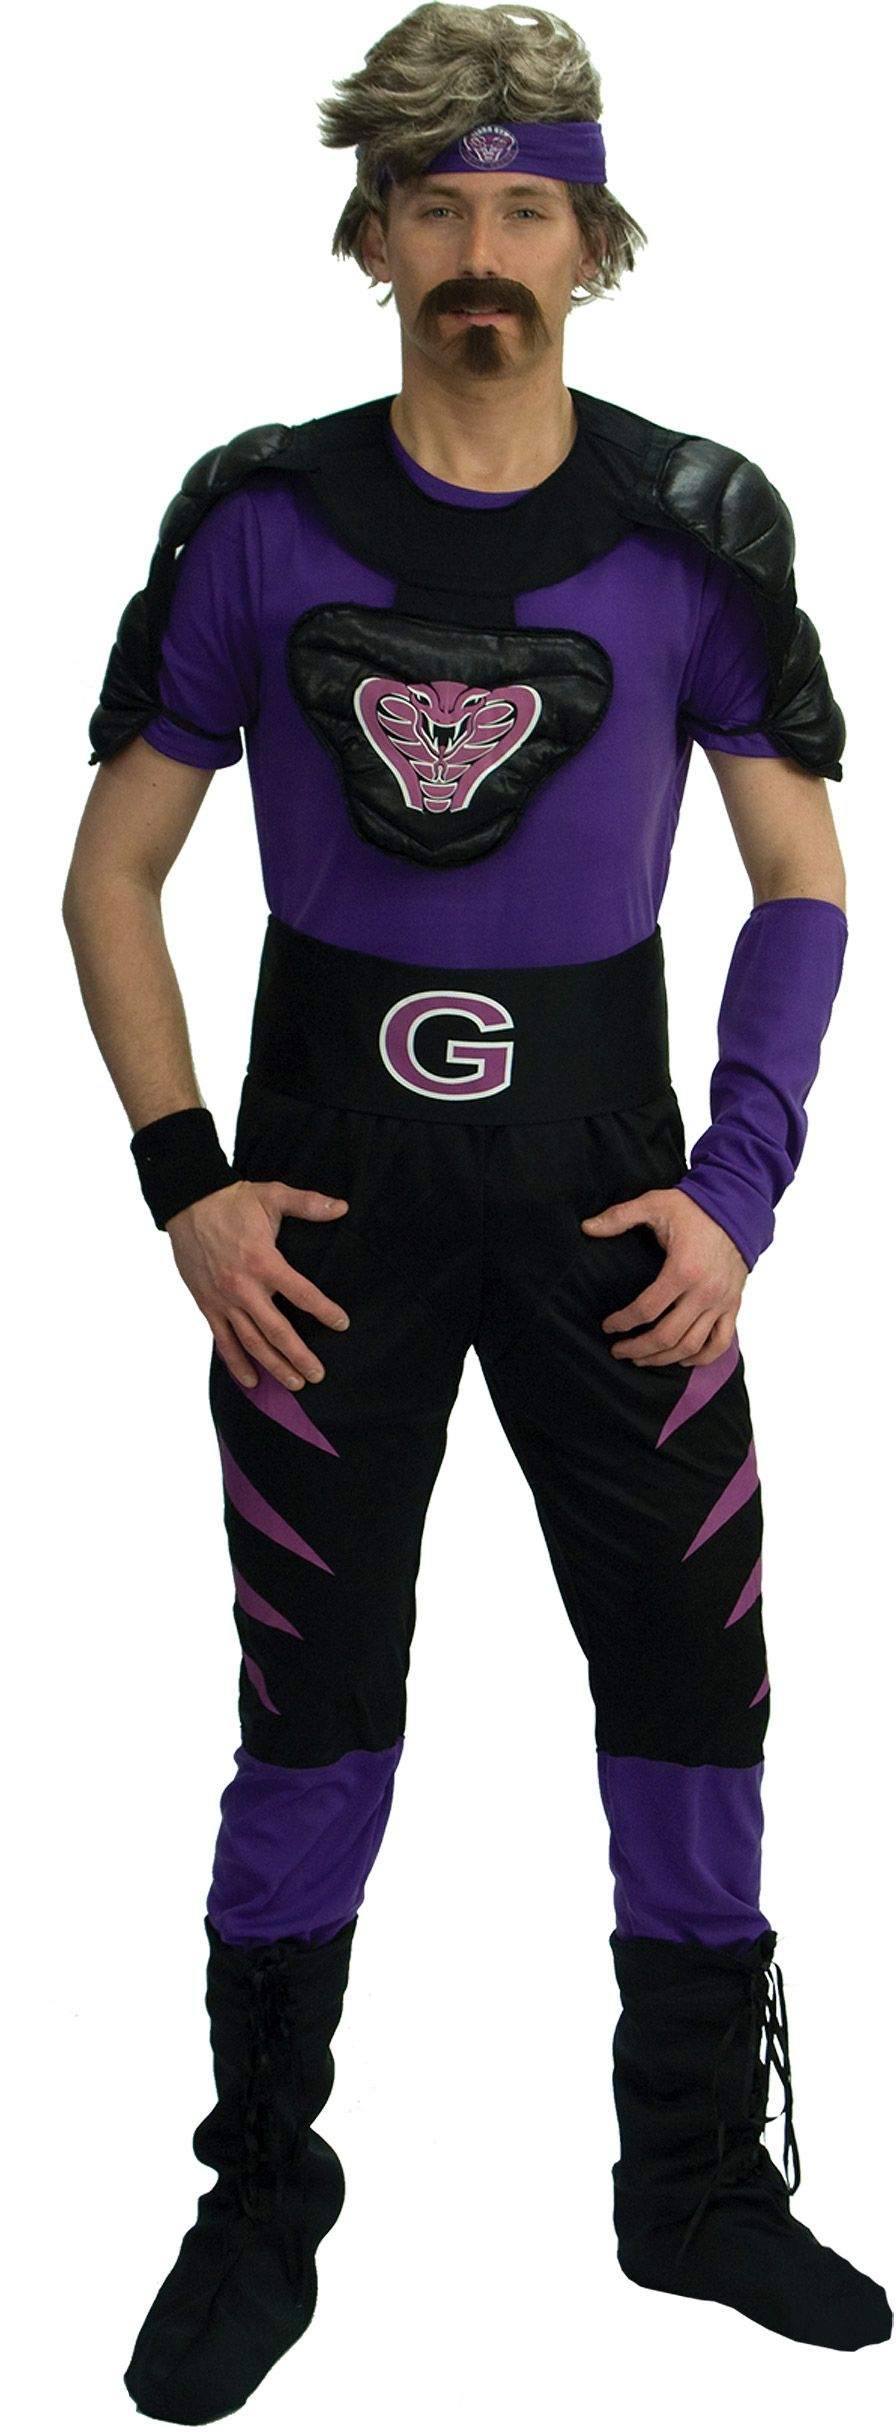 Dodgeball Purple Cobras Deluxe Costume - Hollywood and TV costumes ...